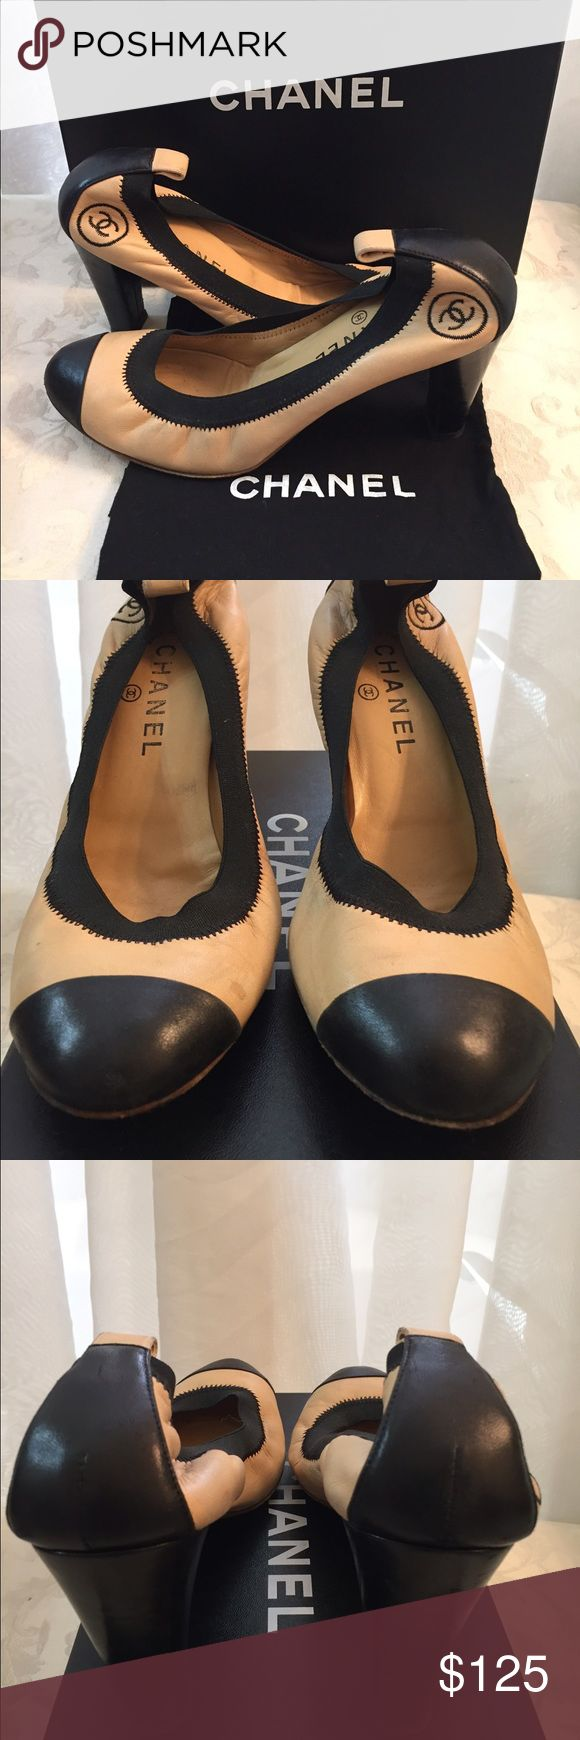 Chanel CC Two Tones Pumps Chanel CC Pumps, two Tones, Black and Camel, CC Details, regular sign of wear, comes with dust bag only. CHANEL Shoes Heels